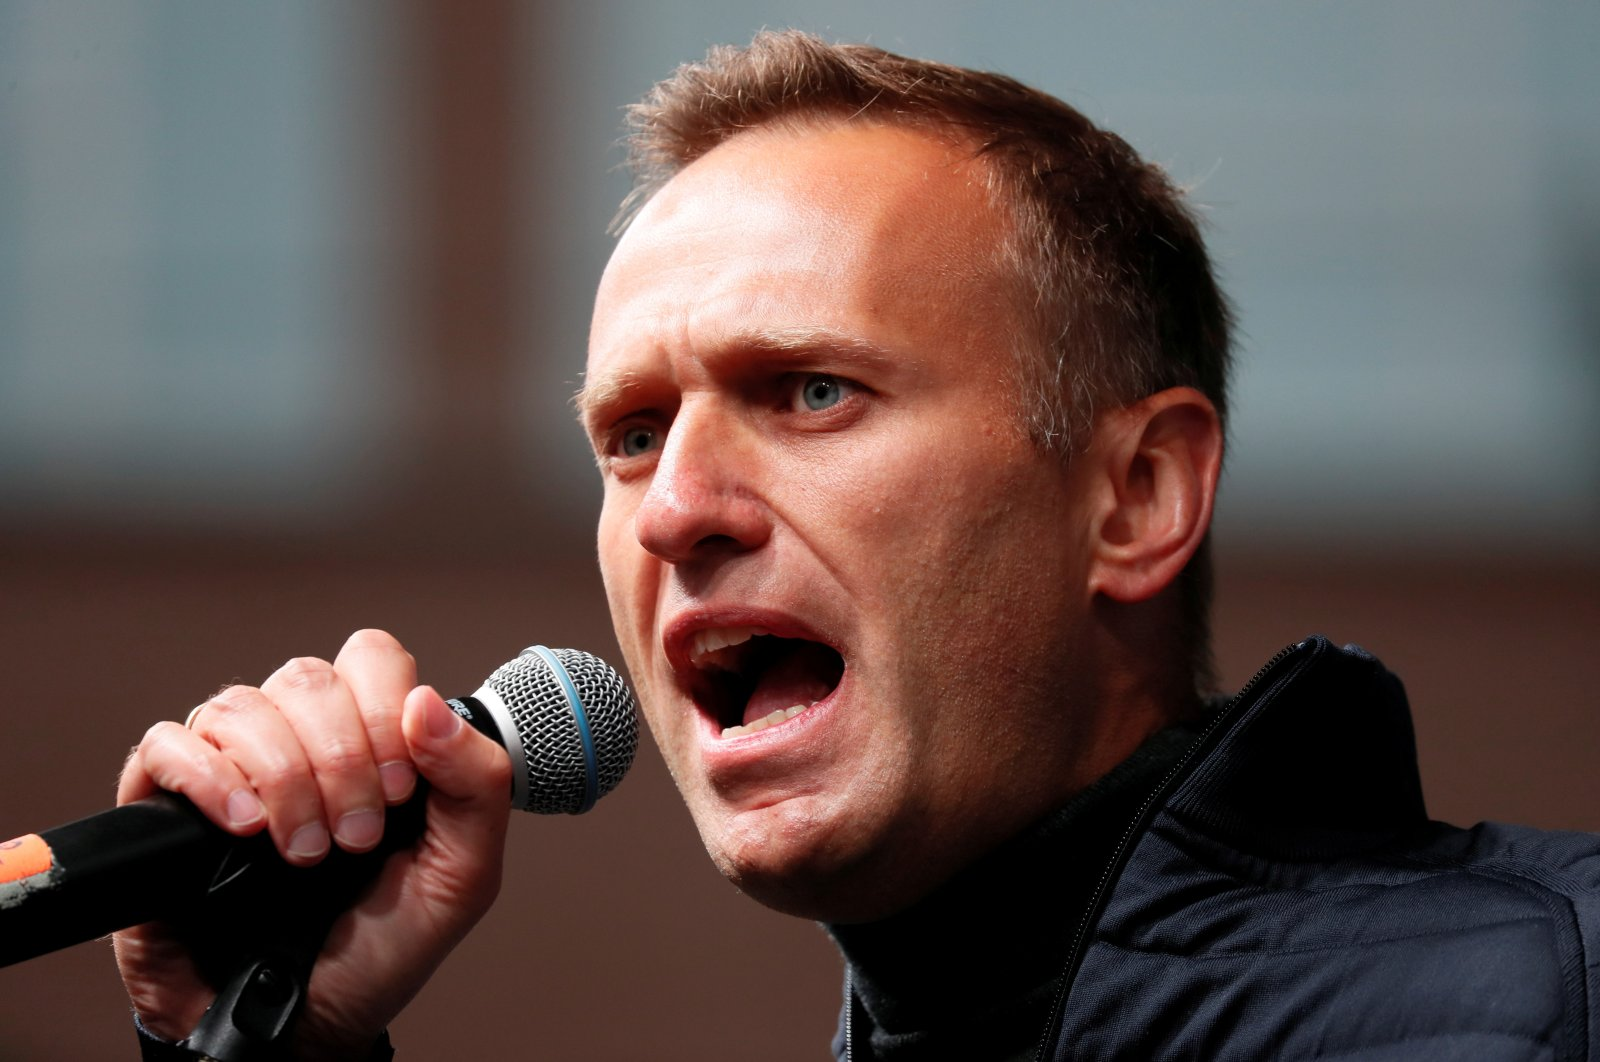 Russian opposition leader Alexei Navalny delivers a speech during a rally to demand the release of jailed protesters, who were detained during opposition demonstrations for fair elections, in Moscow, Russia Sept. 29, 2019. (Reuters Photo)